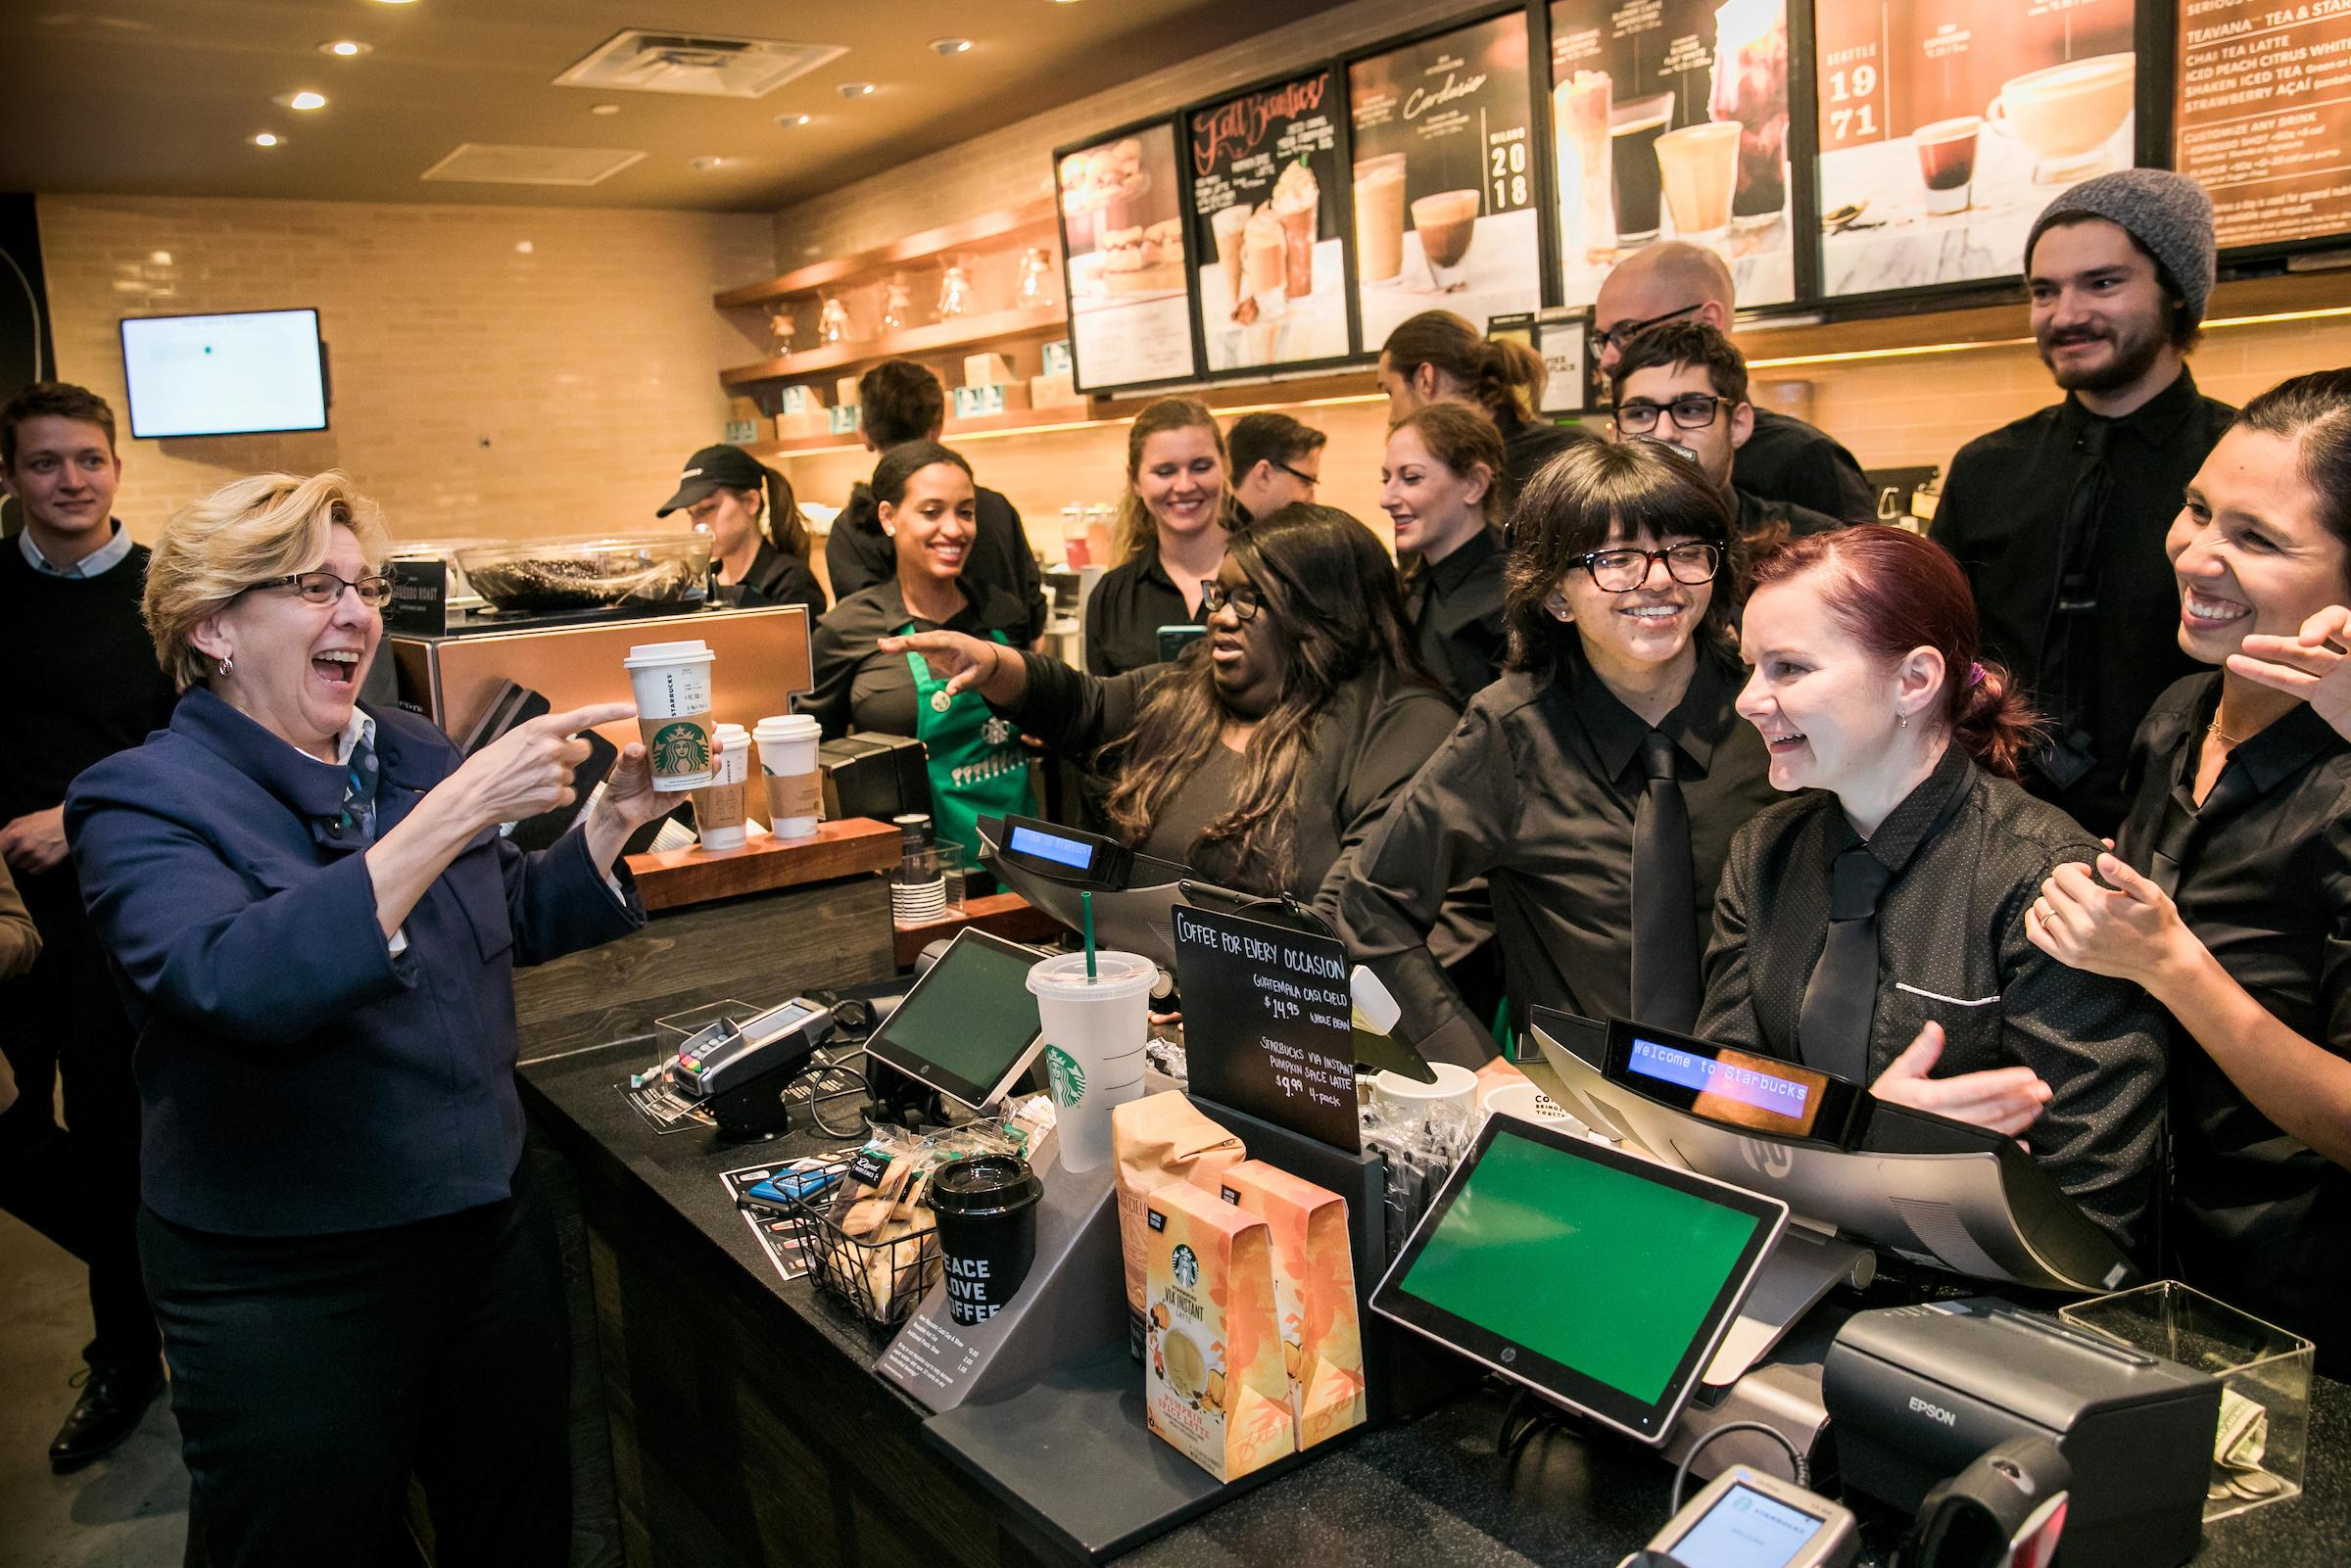 Roberta J. Cordano, President of Gallaudet University, stopped by for a cup of coffee. Many of the employees are students or alumni of Gallaudet.{ }(Image: Joshua Trujillo, Starbucks)